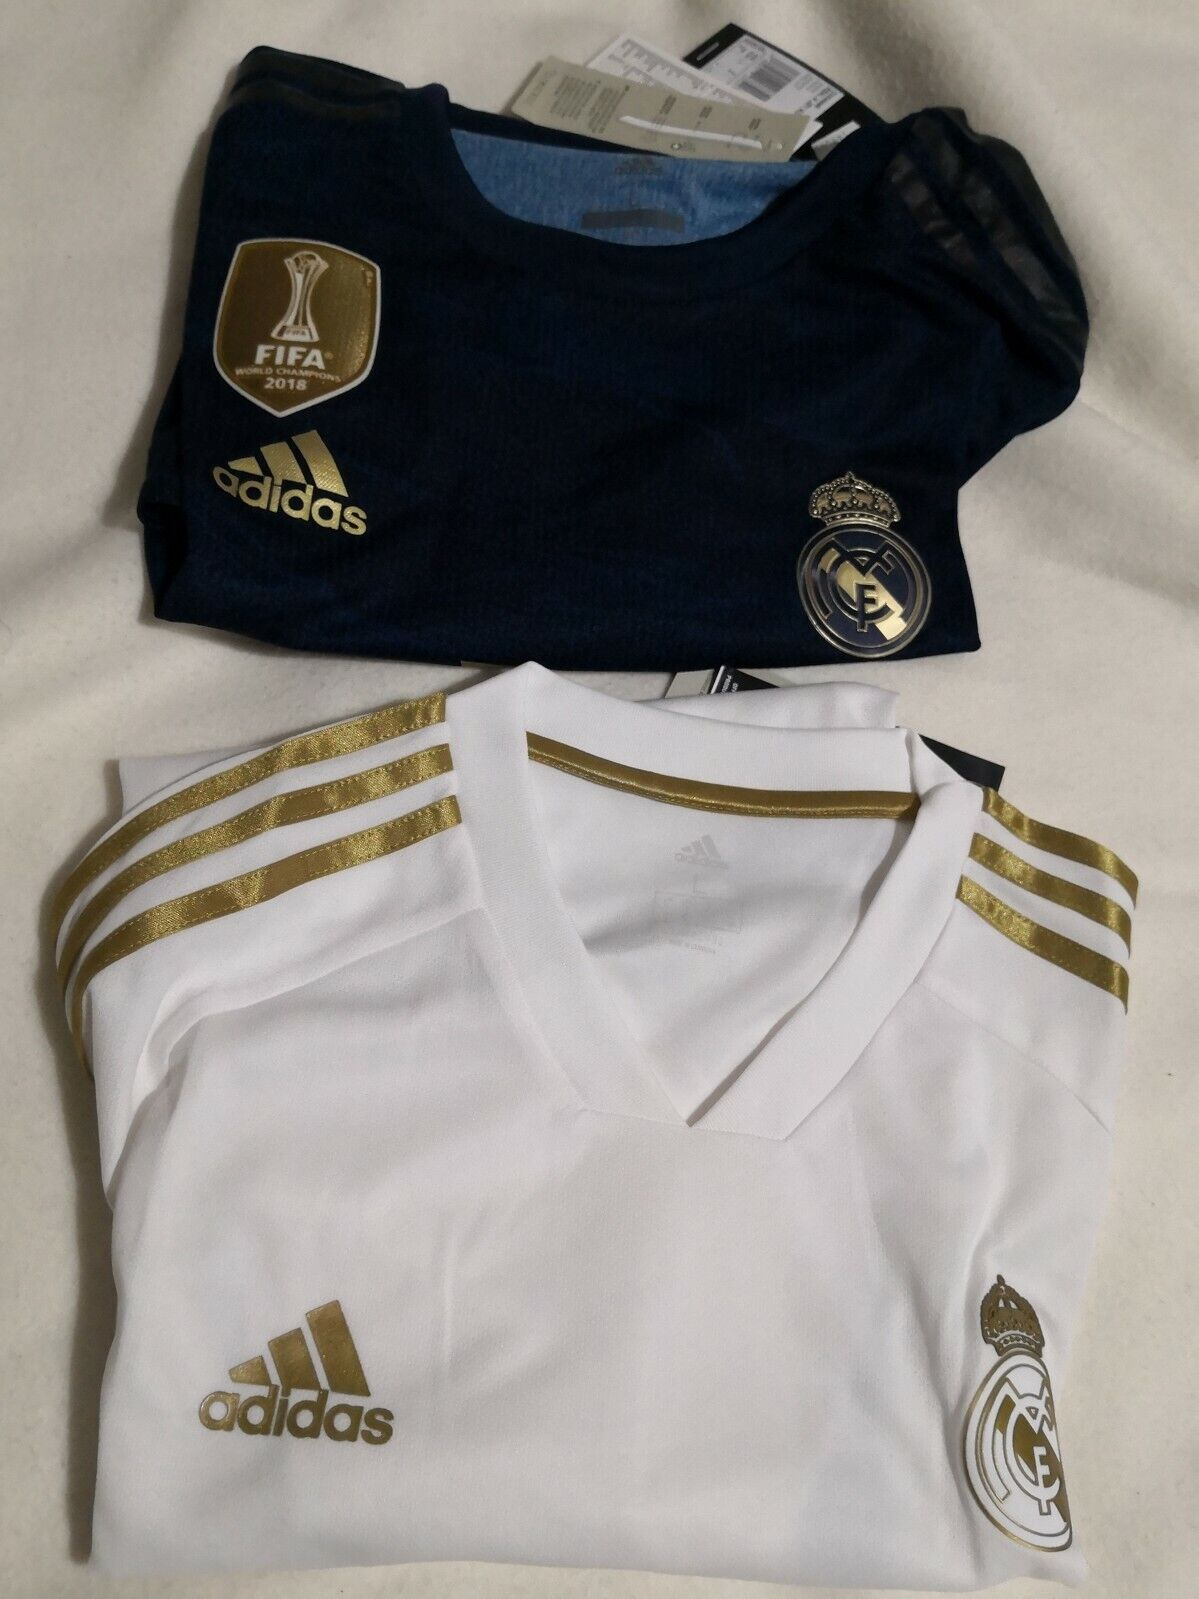 REAL MADRID OFFICIAL CHAMPIONS LEAGUE  MAGLIA UFFICIALE UFFICIALE UFFICIALE  CALCIO BIANCA 034